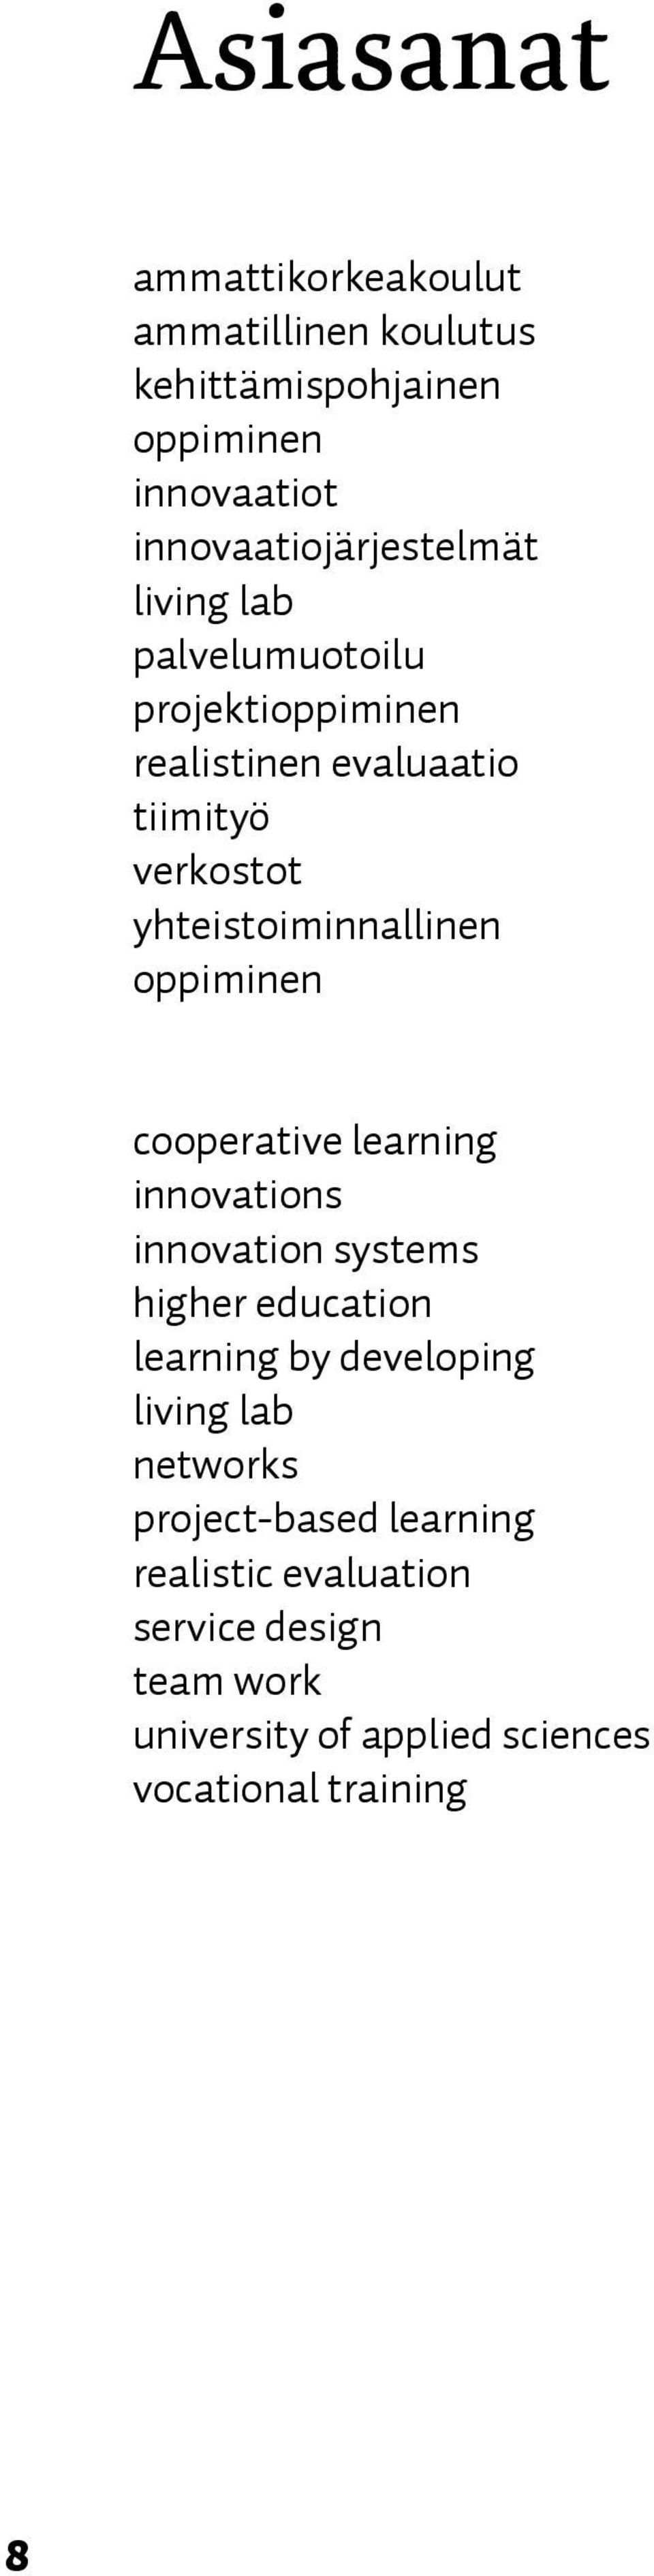 oppiminen cooperative learning innovations innovation systems higher education learning by developing living lab